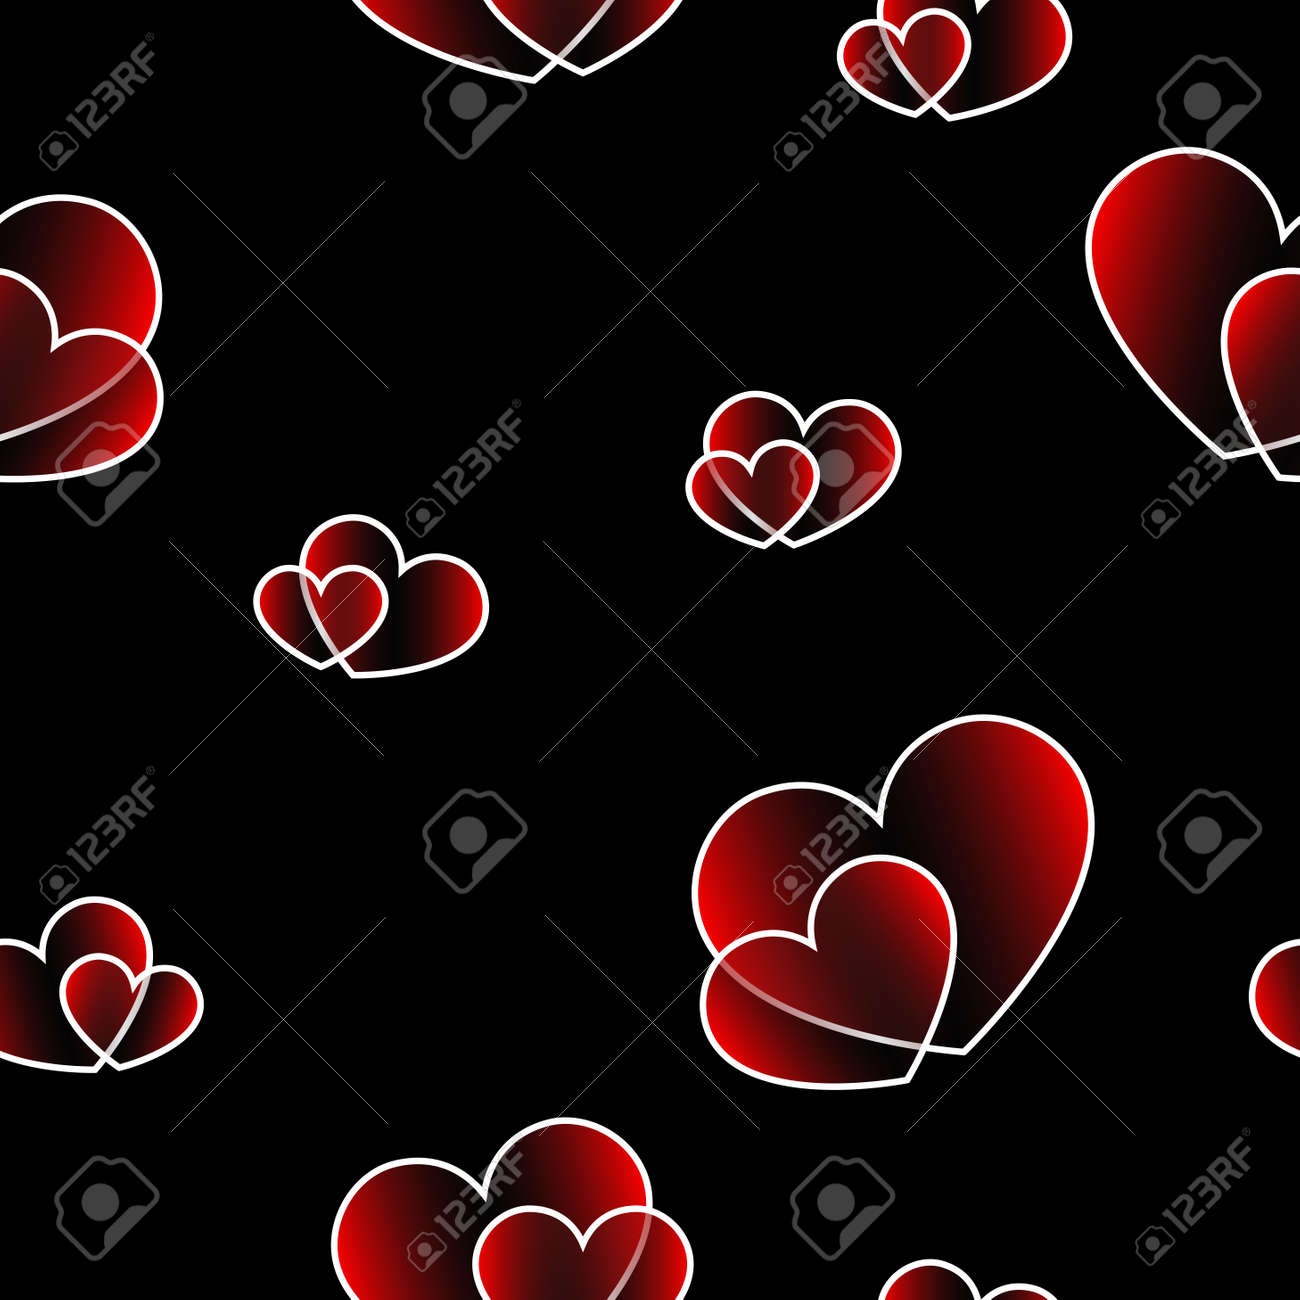 Cute Seamless Pattern On Black Background Fashion Graphics Design Stylish Valentine Day Print Concept For Fabric Wallpaper Or Wedding Card